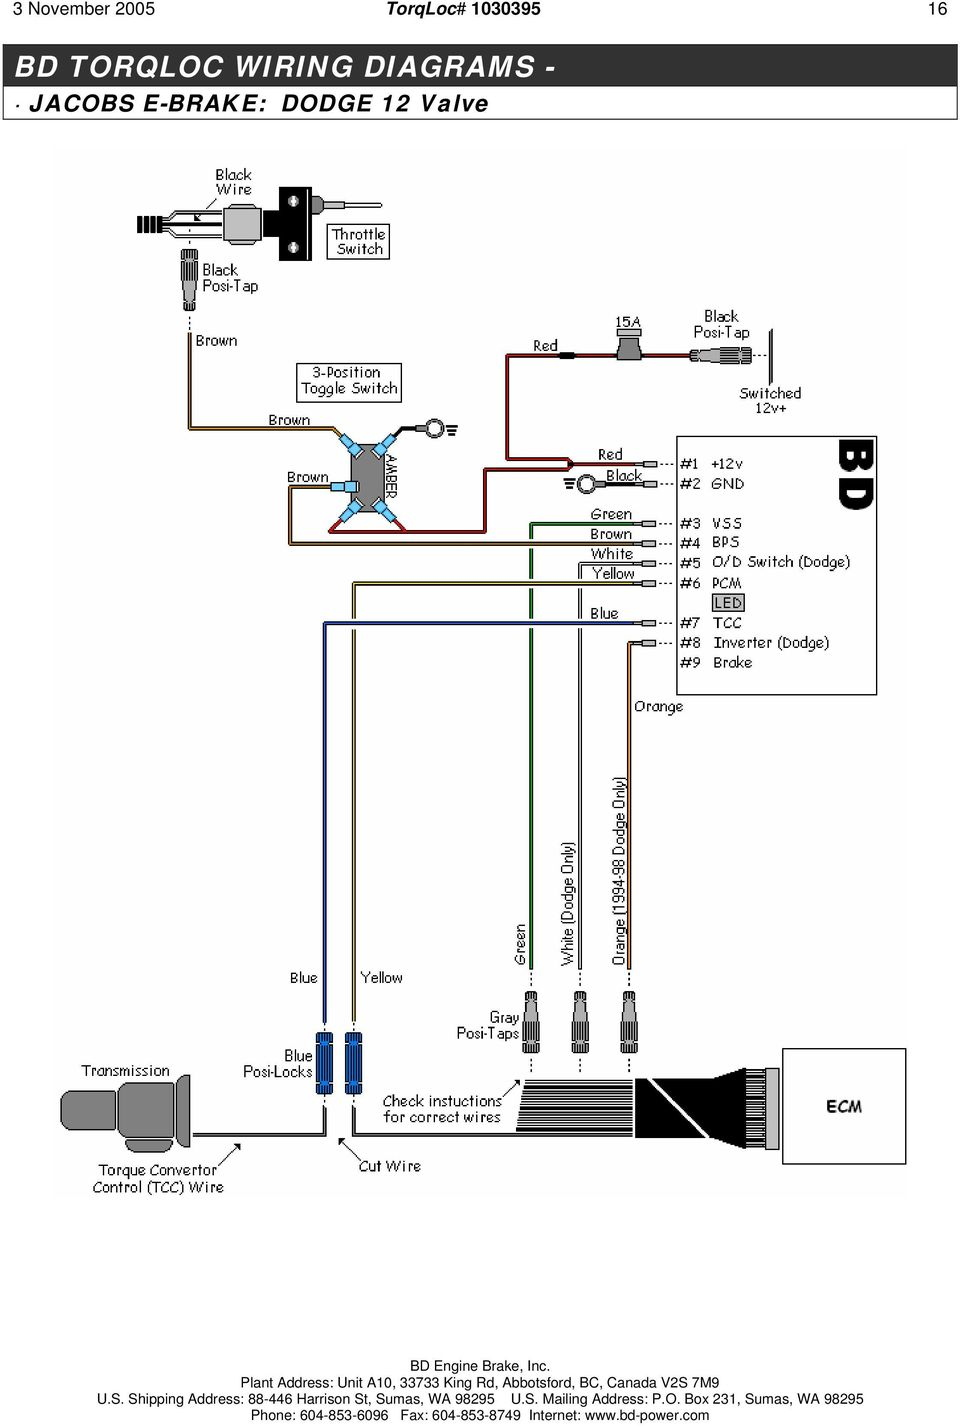 medium resolution of torqloc wiring diagrams